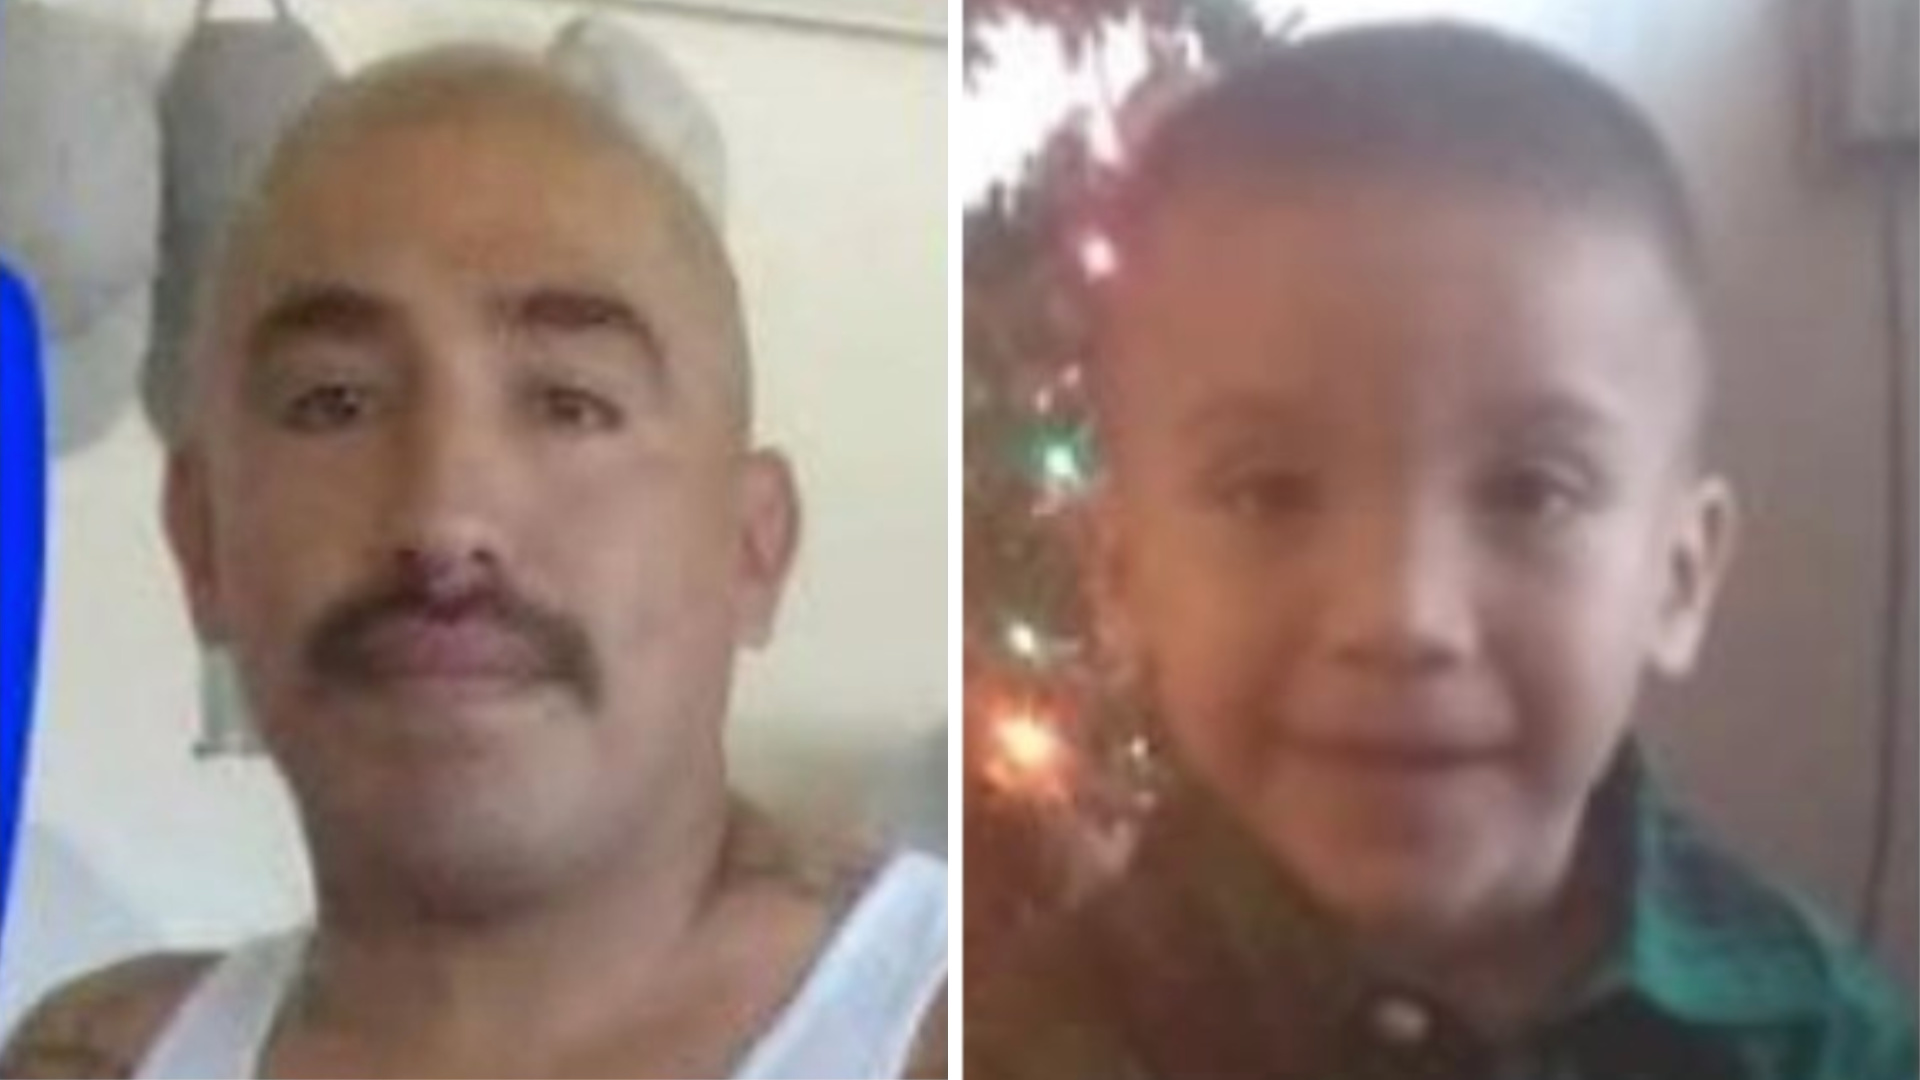 Javier Vidal, 36, left, and his son Elias Vidal, 2, were sought in an Amber Alert issued out of Lamont on April 12, 2020. (California Highway Patrol)